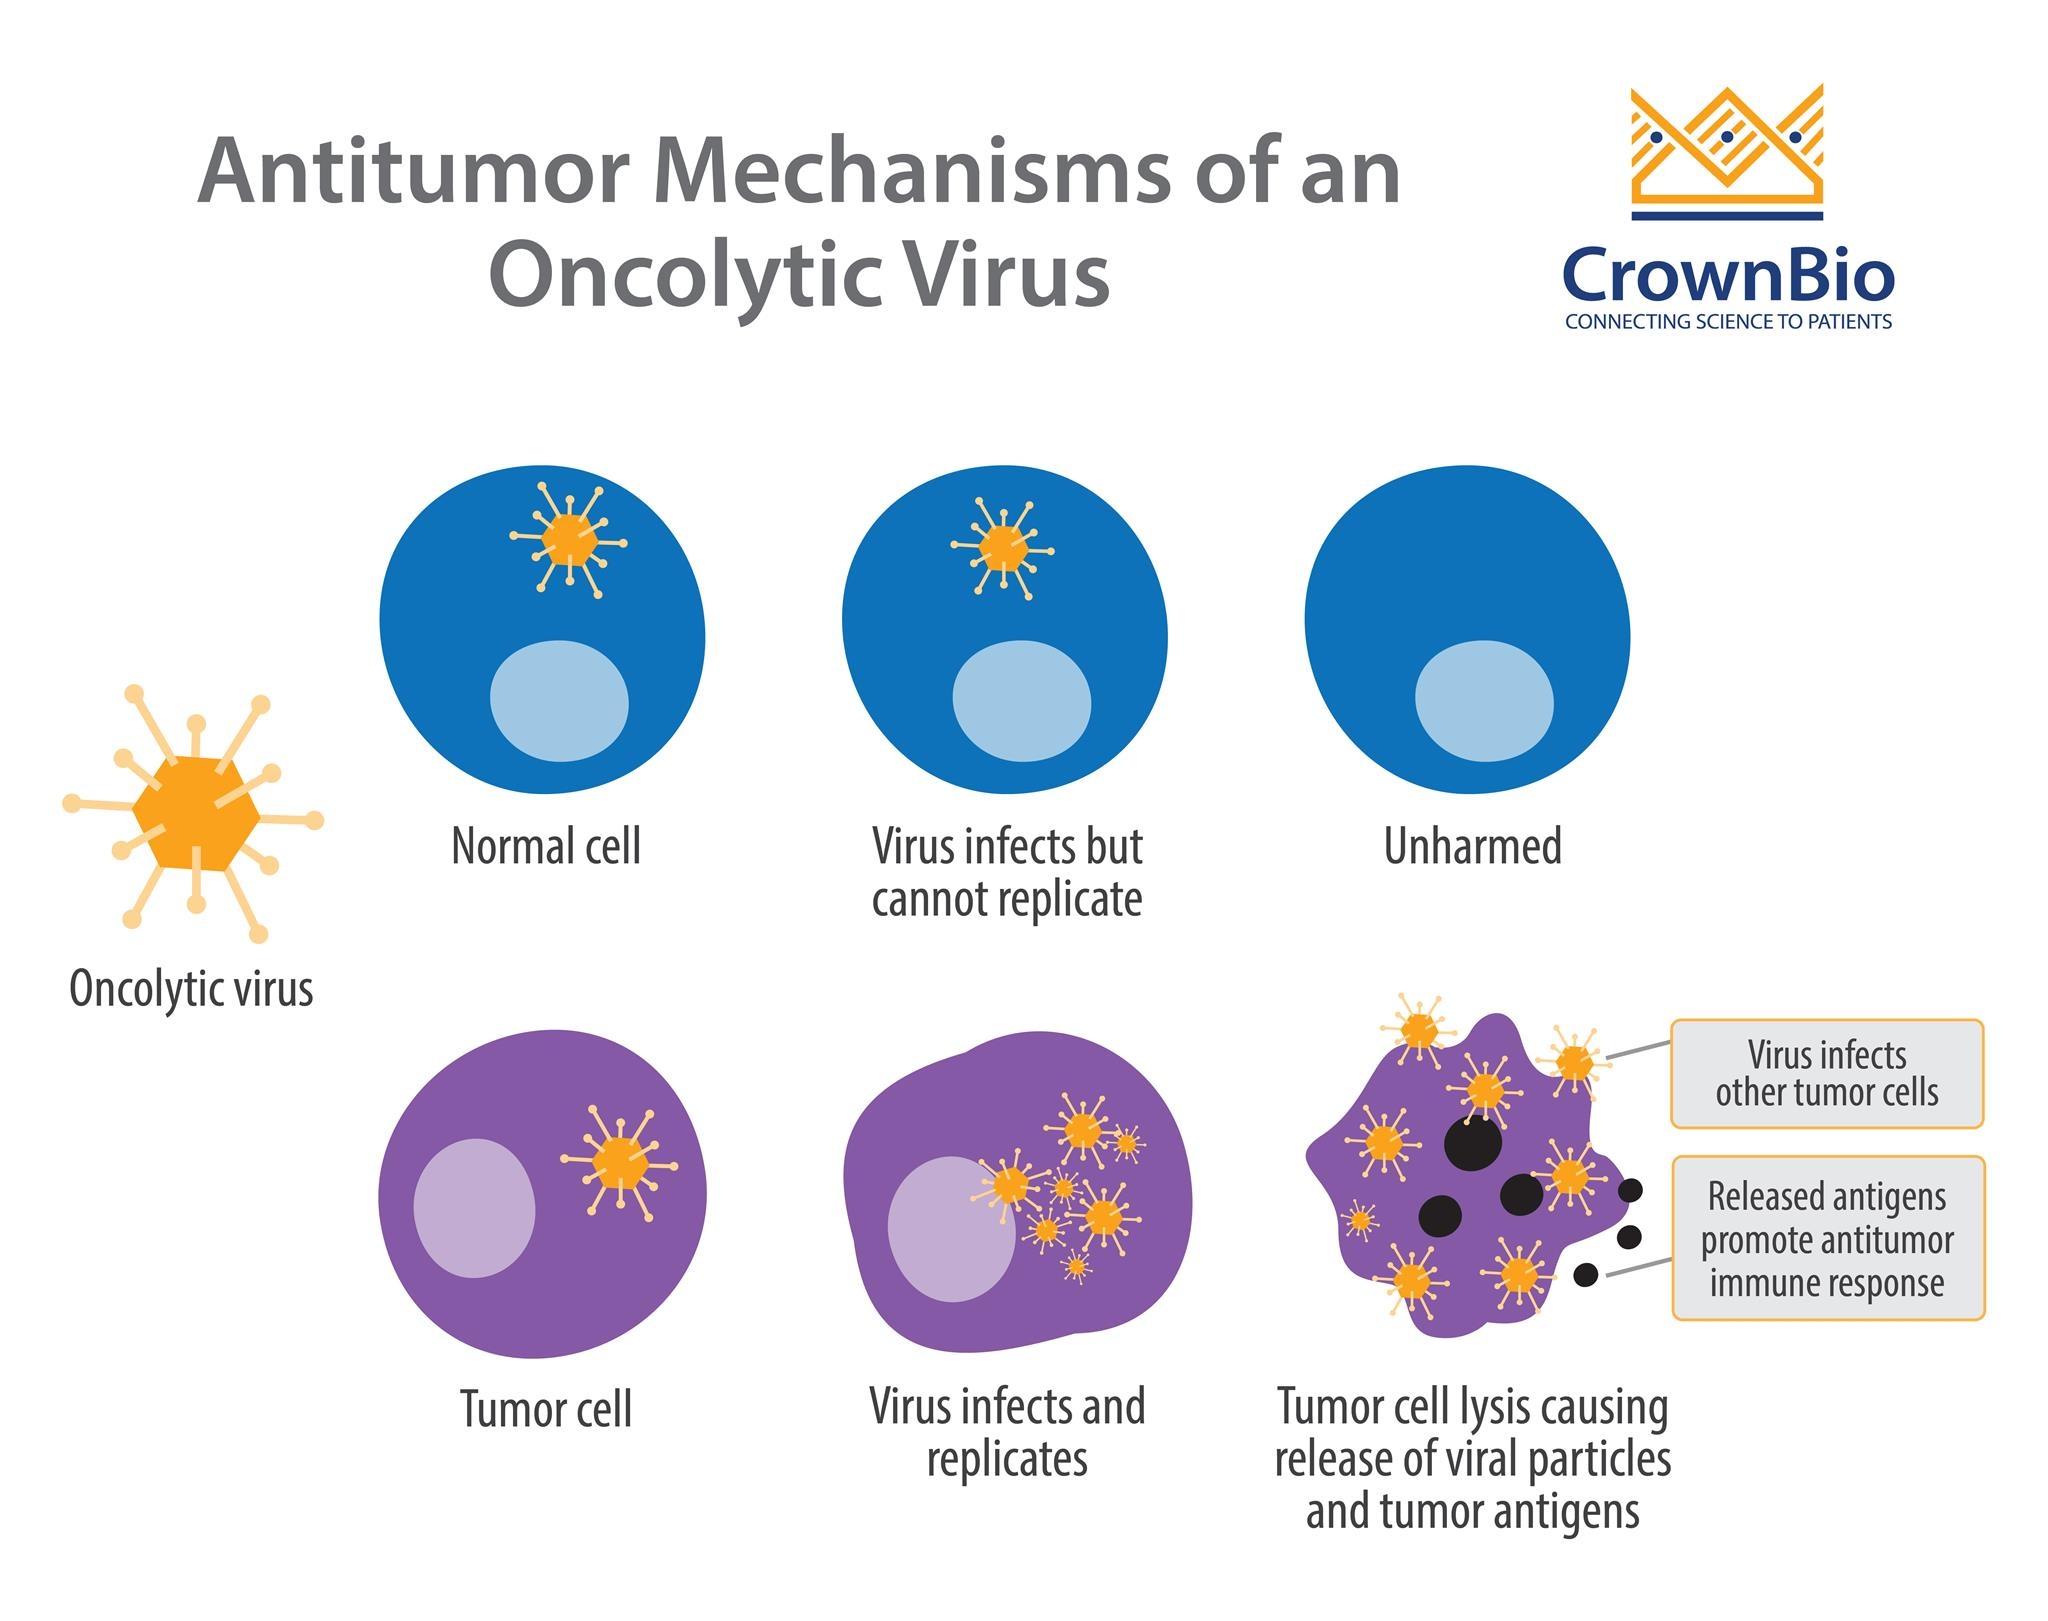 Illustration of anti-tumor function of oncolytic viruses compared to behavior in non-cancerous cells